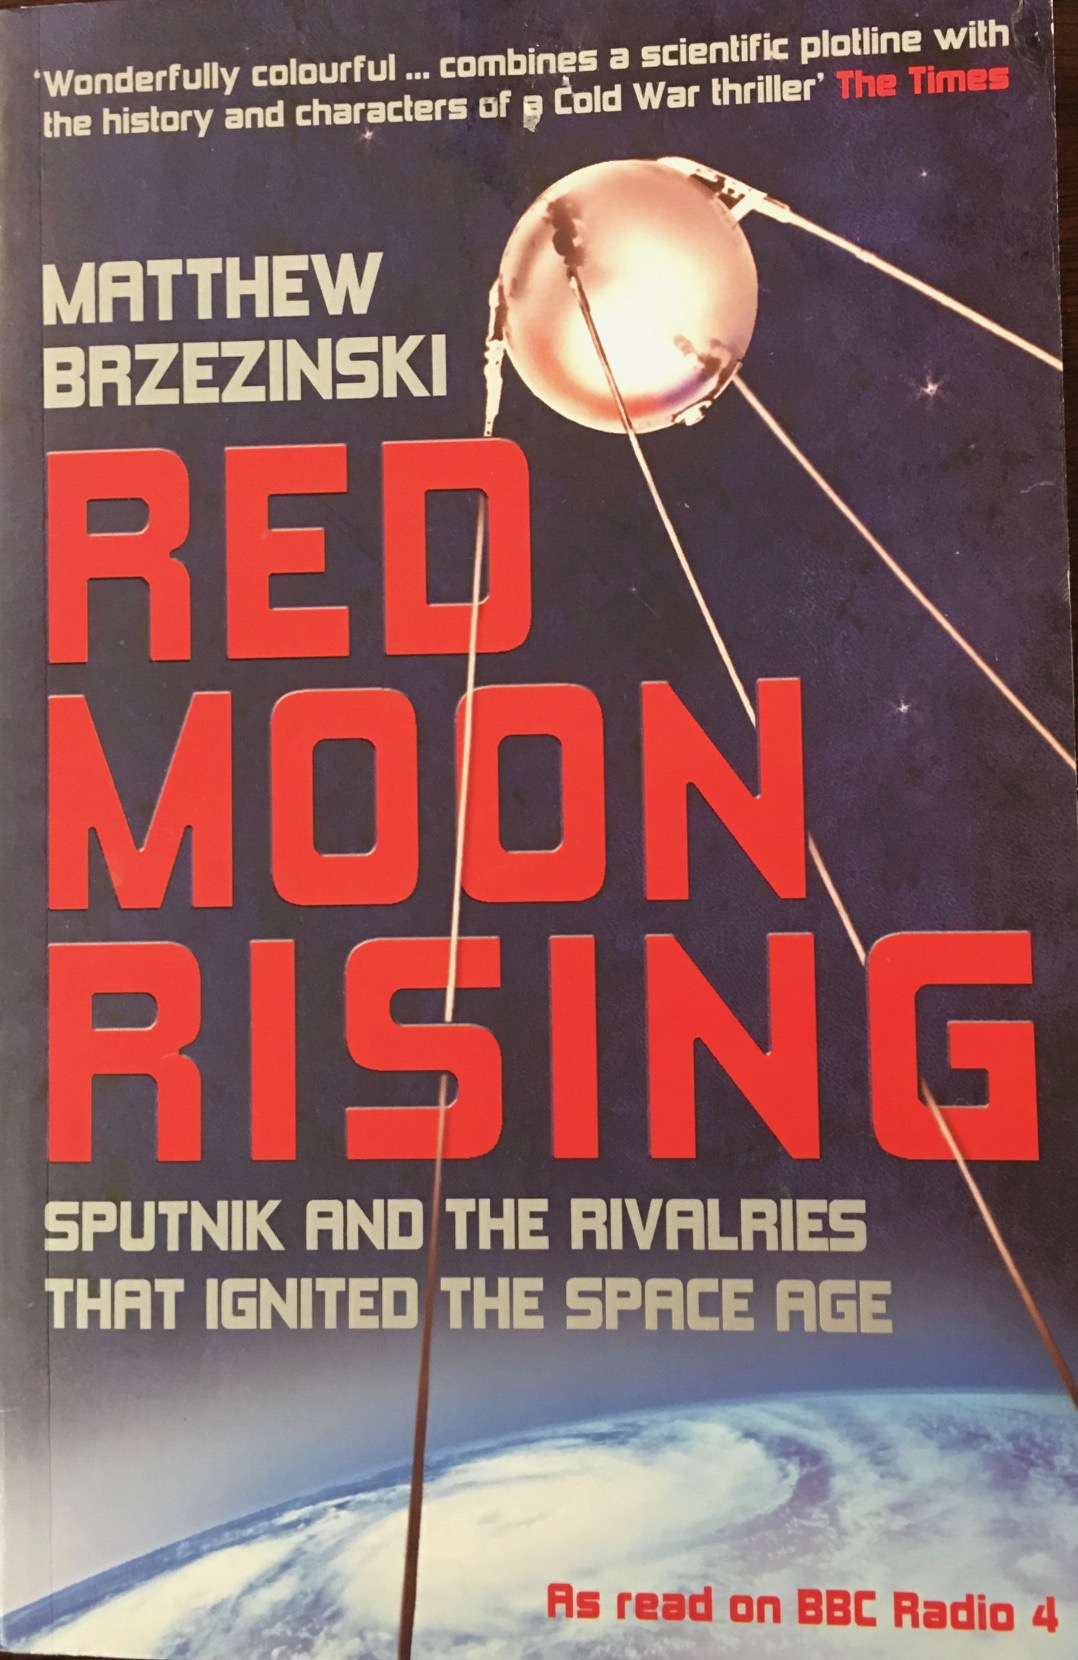 Image for Red Moon Rising: Sputnik and the rivalries that ignited the space age